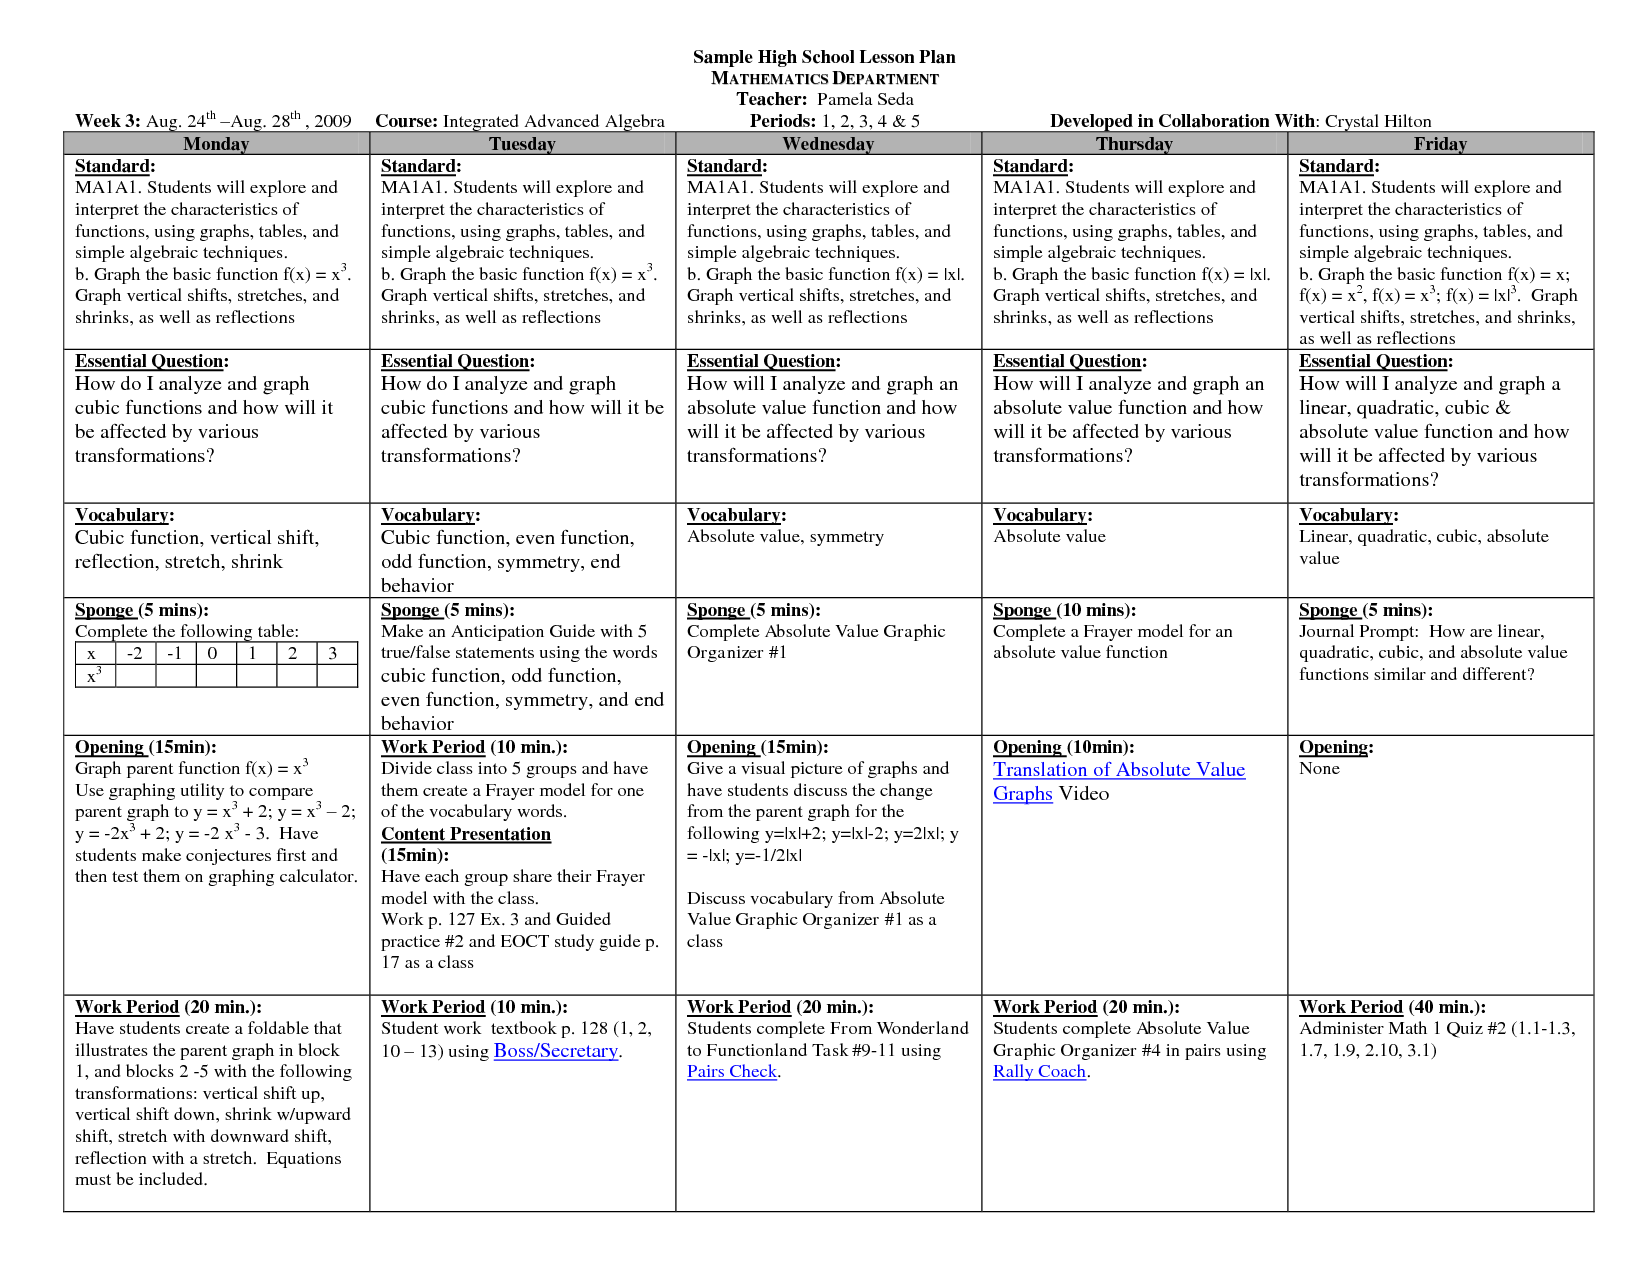 Math lesson plan template high schoolsample hs math weekly for 5 e model lesson plan template